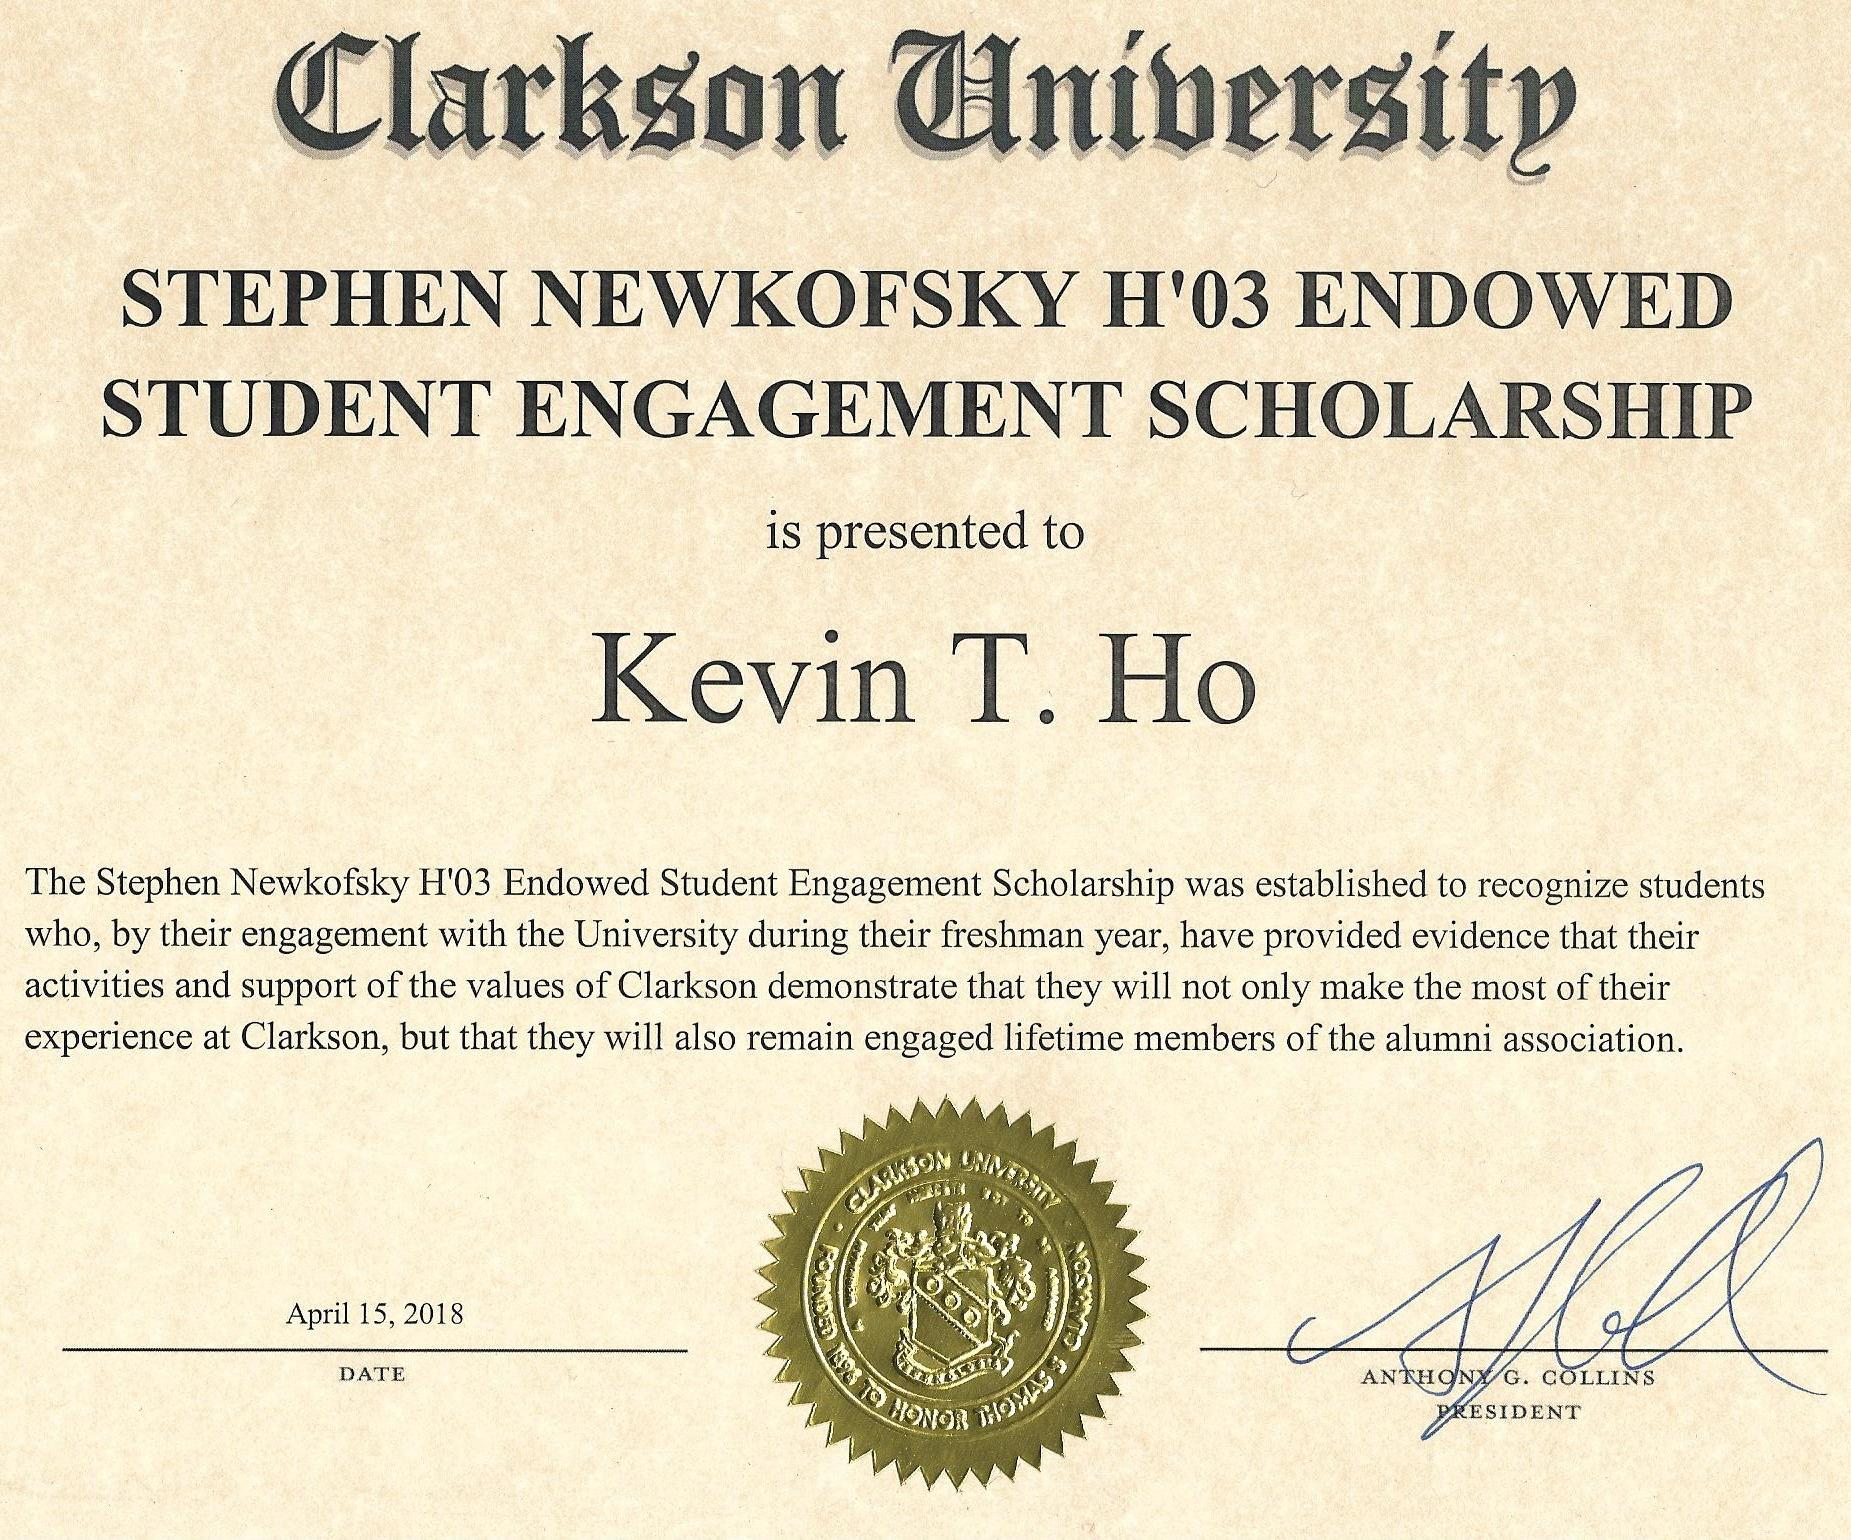 Stephen newkofsky endowed student enagagement scholarship